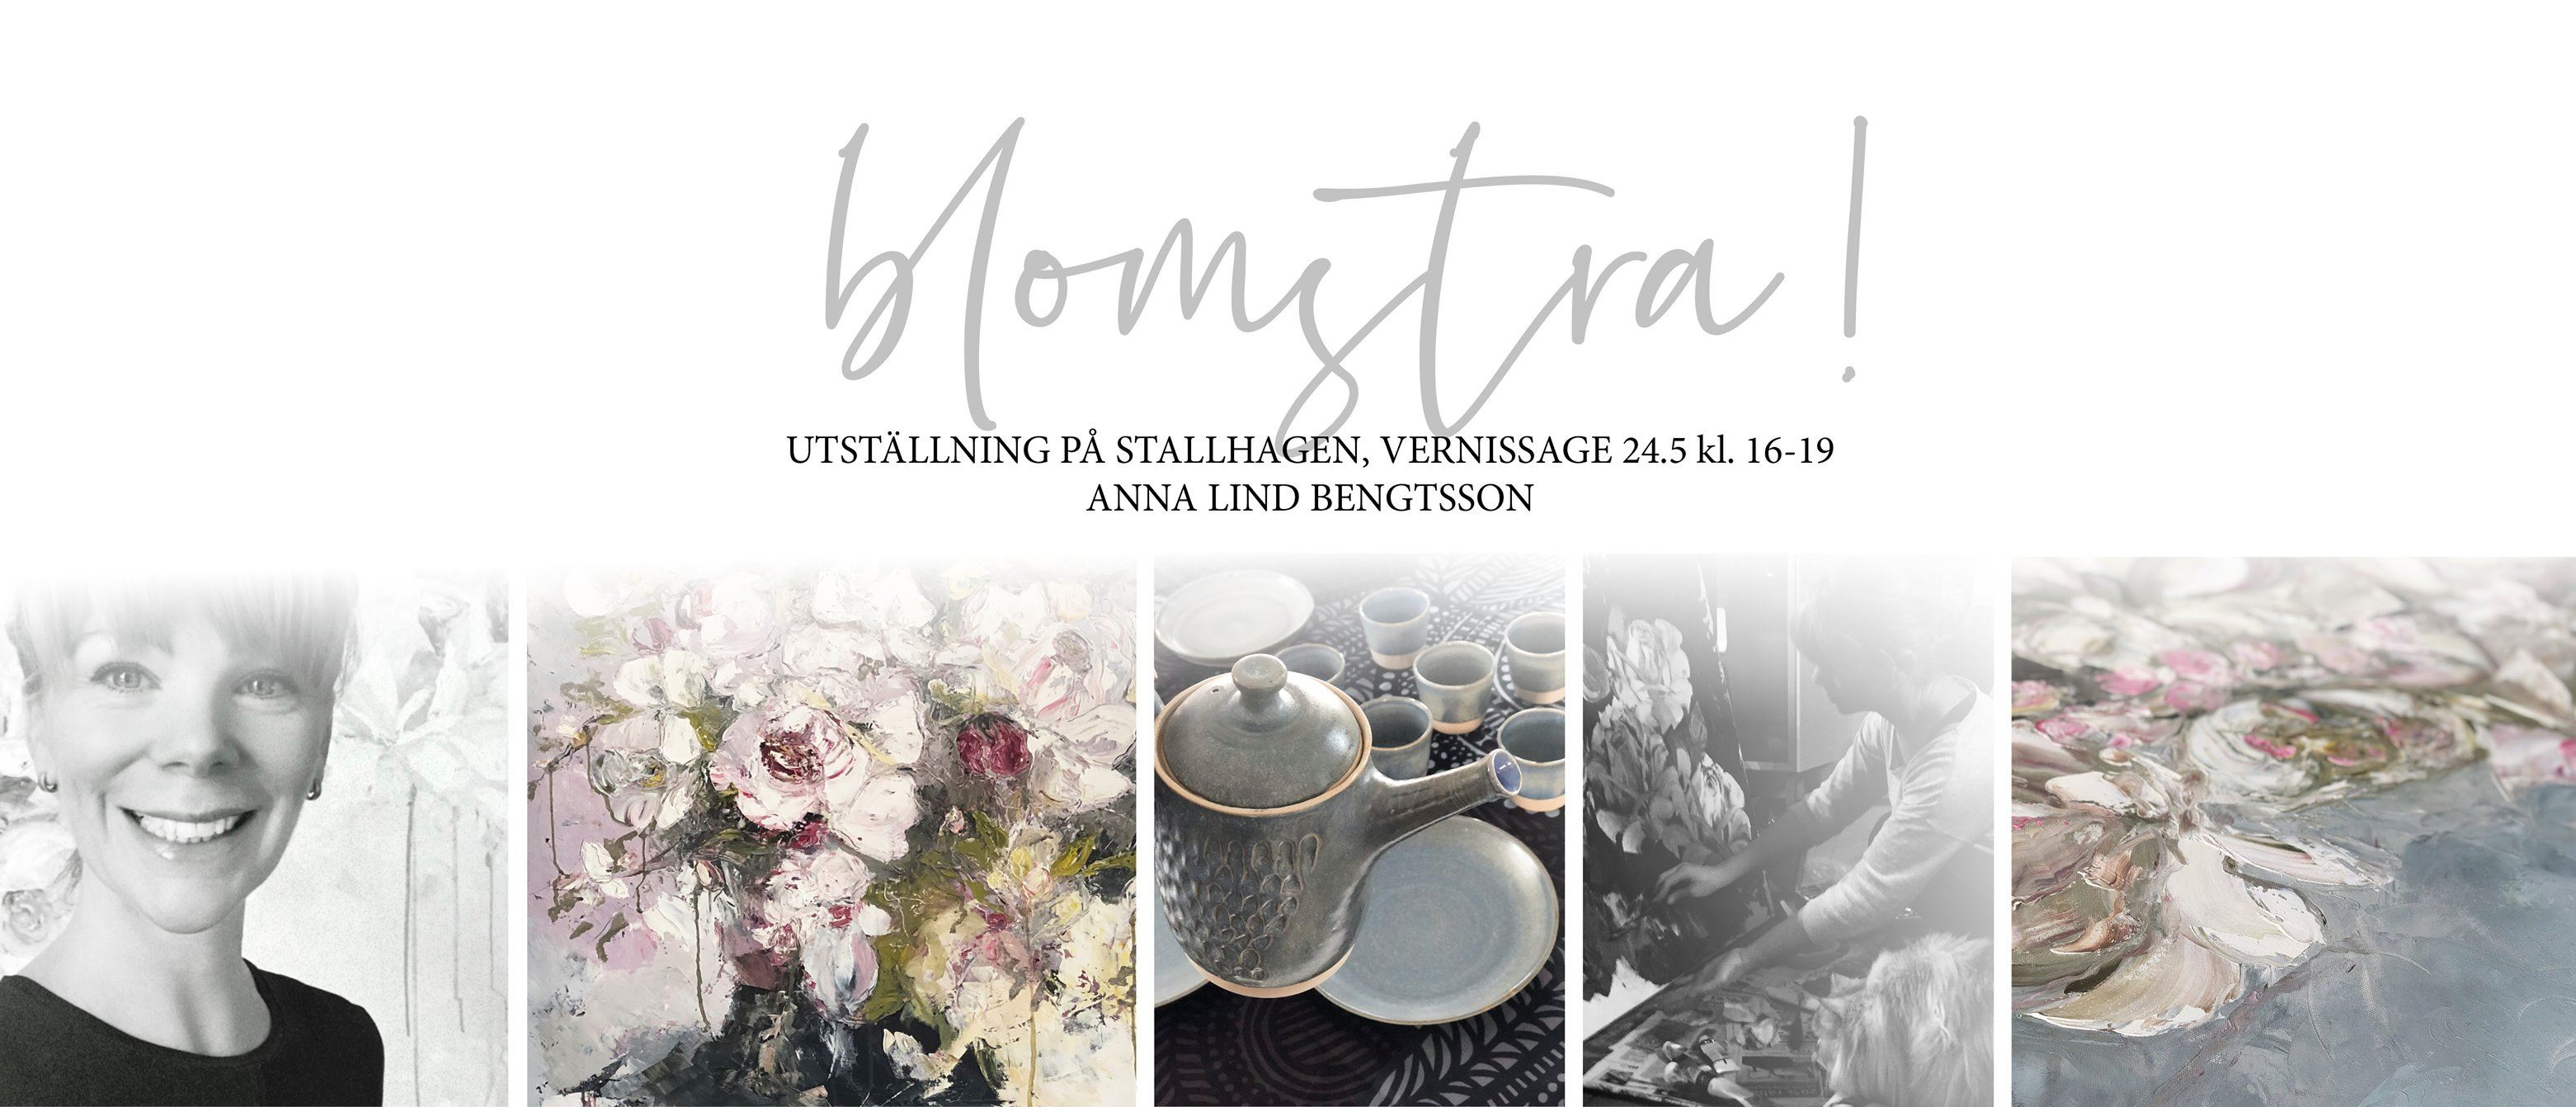 Art exhibition by Anna Lind-Bengtsson